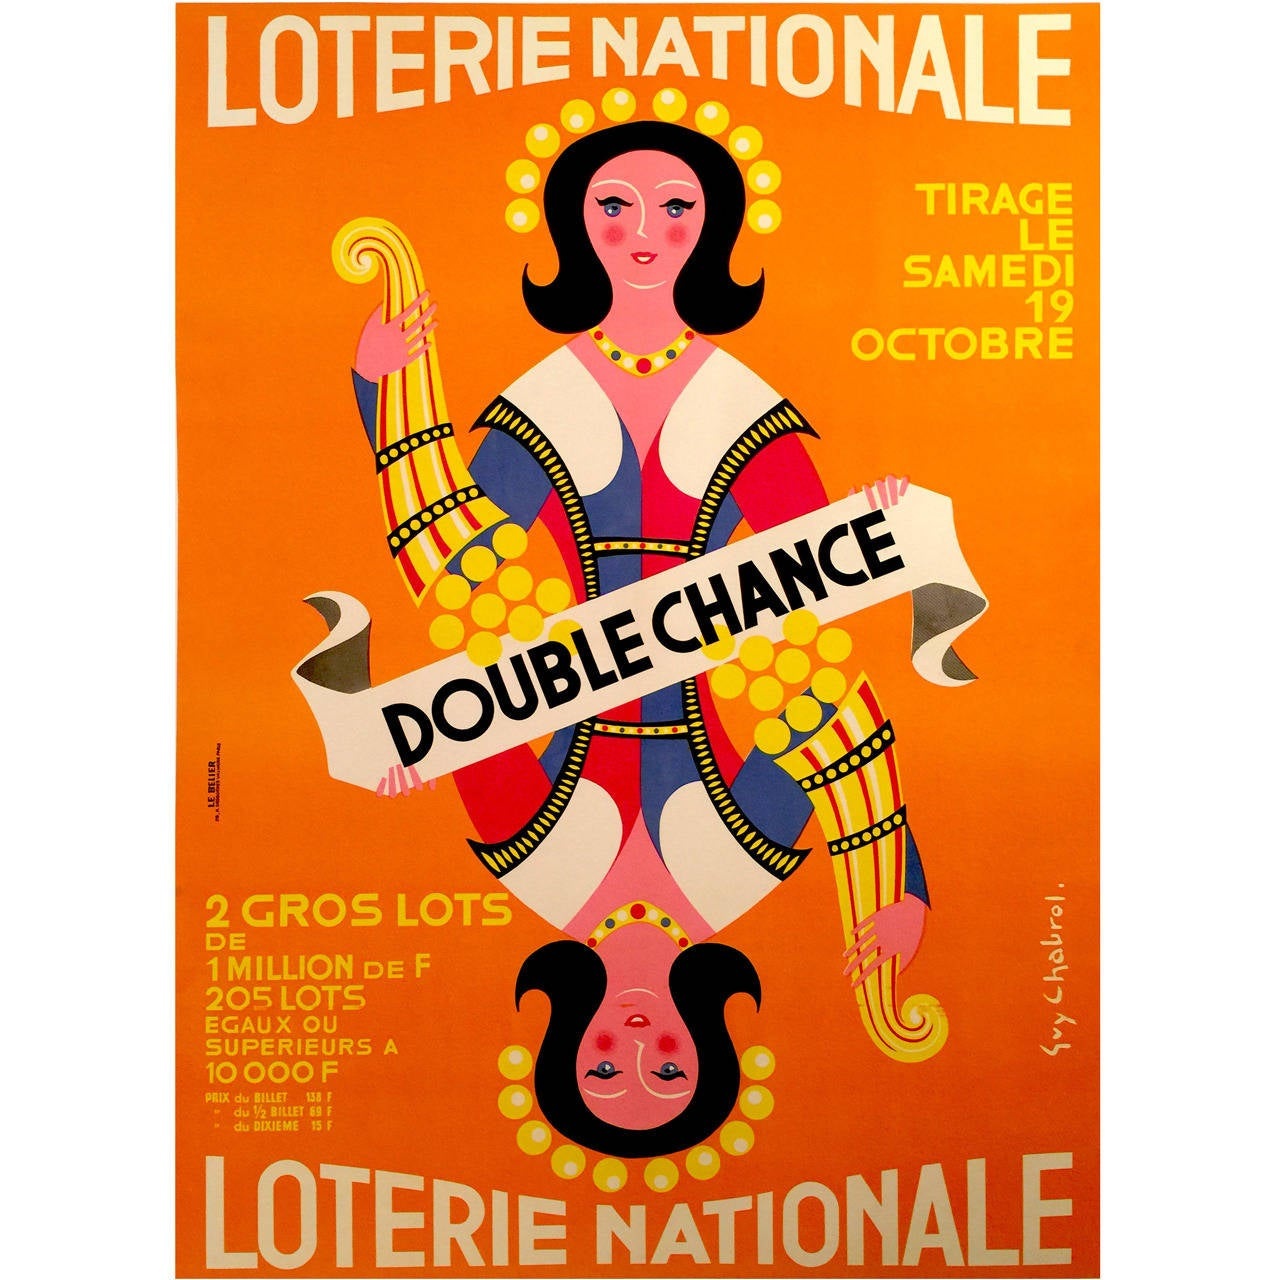 French Mid-Century Modern Poster for Loterie Nationale by Guy Chabrol, 1963